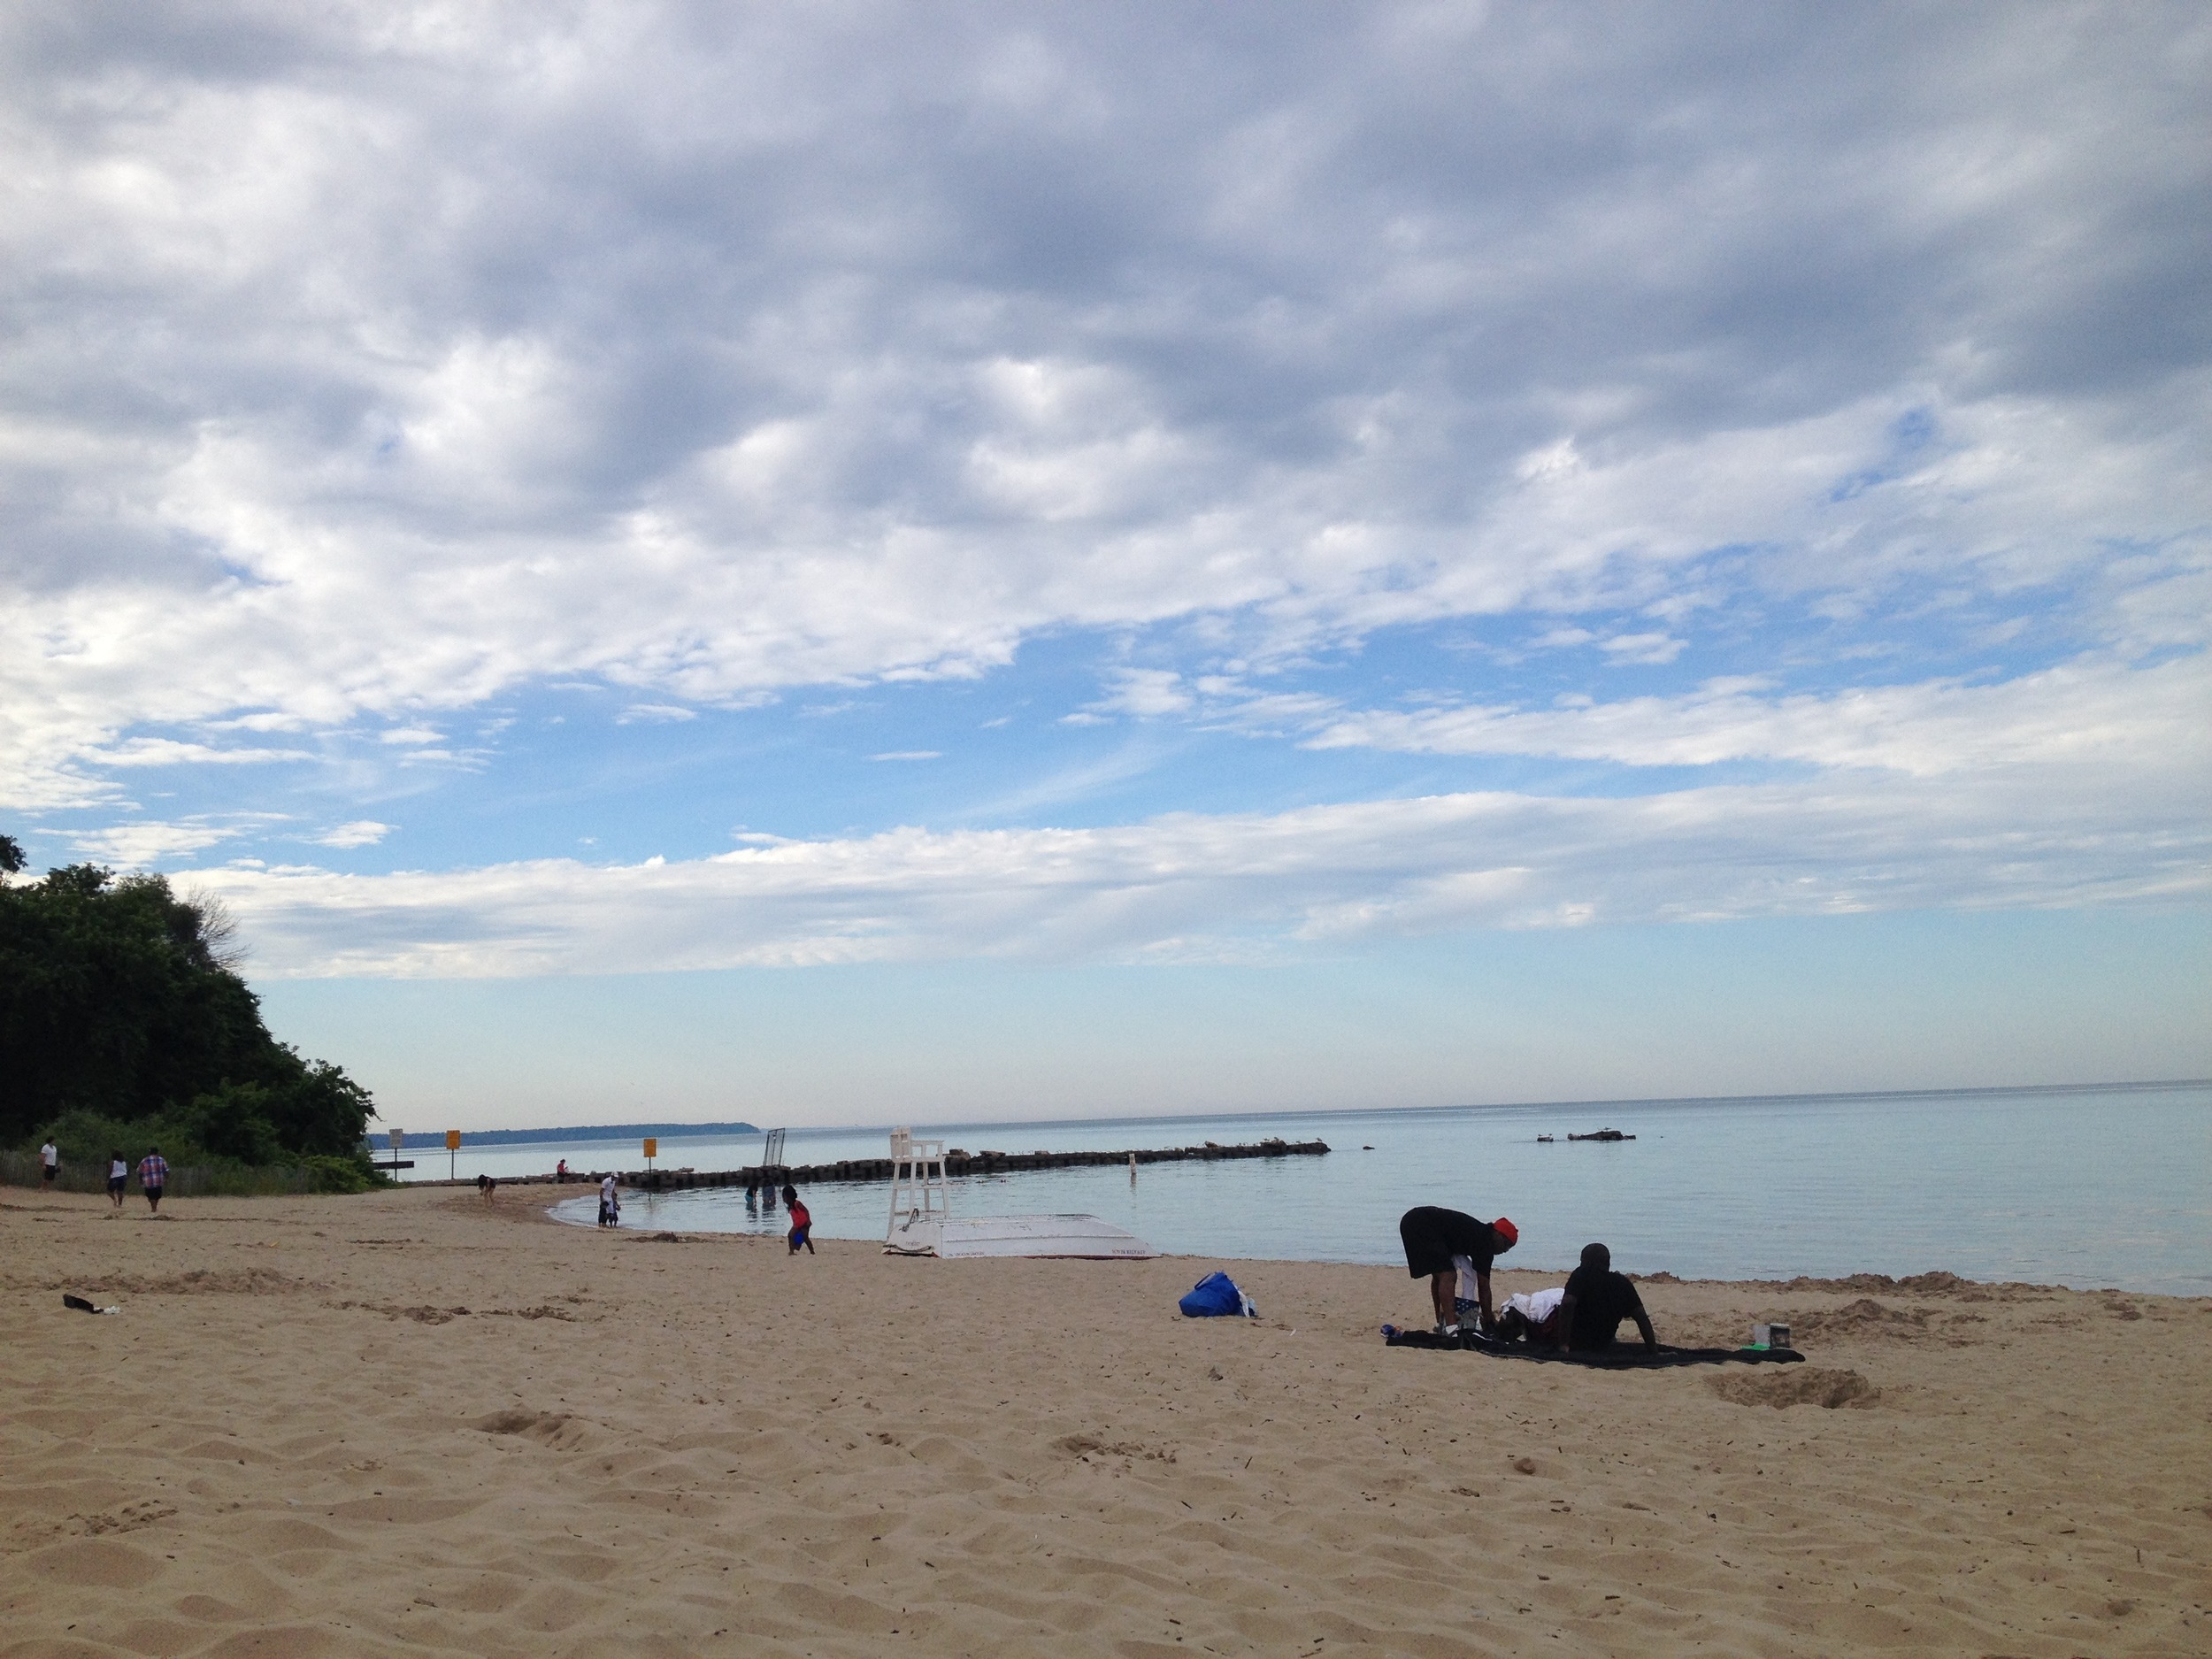 A beach on Lake Michigan, just north of Milwaukee